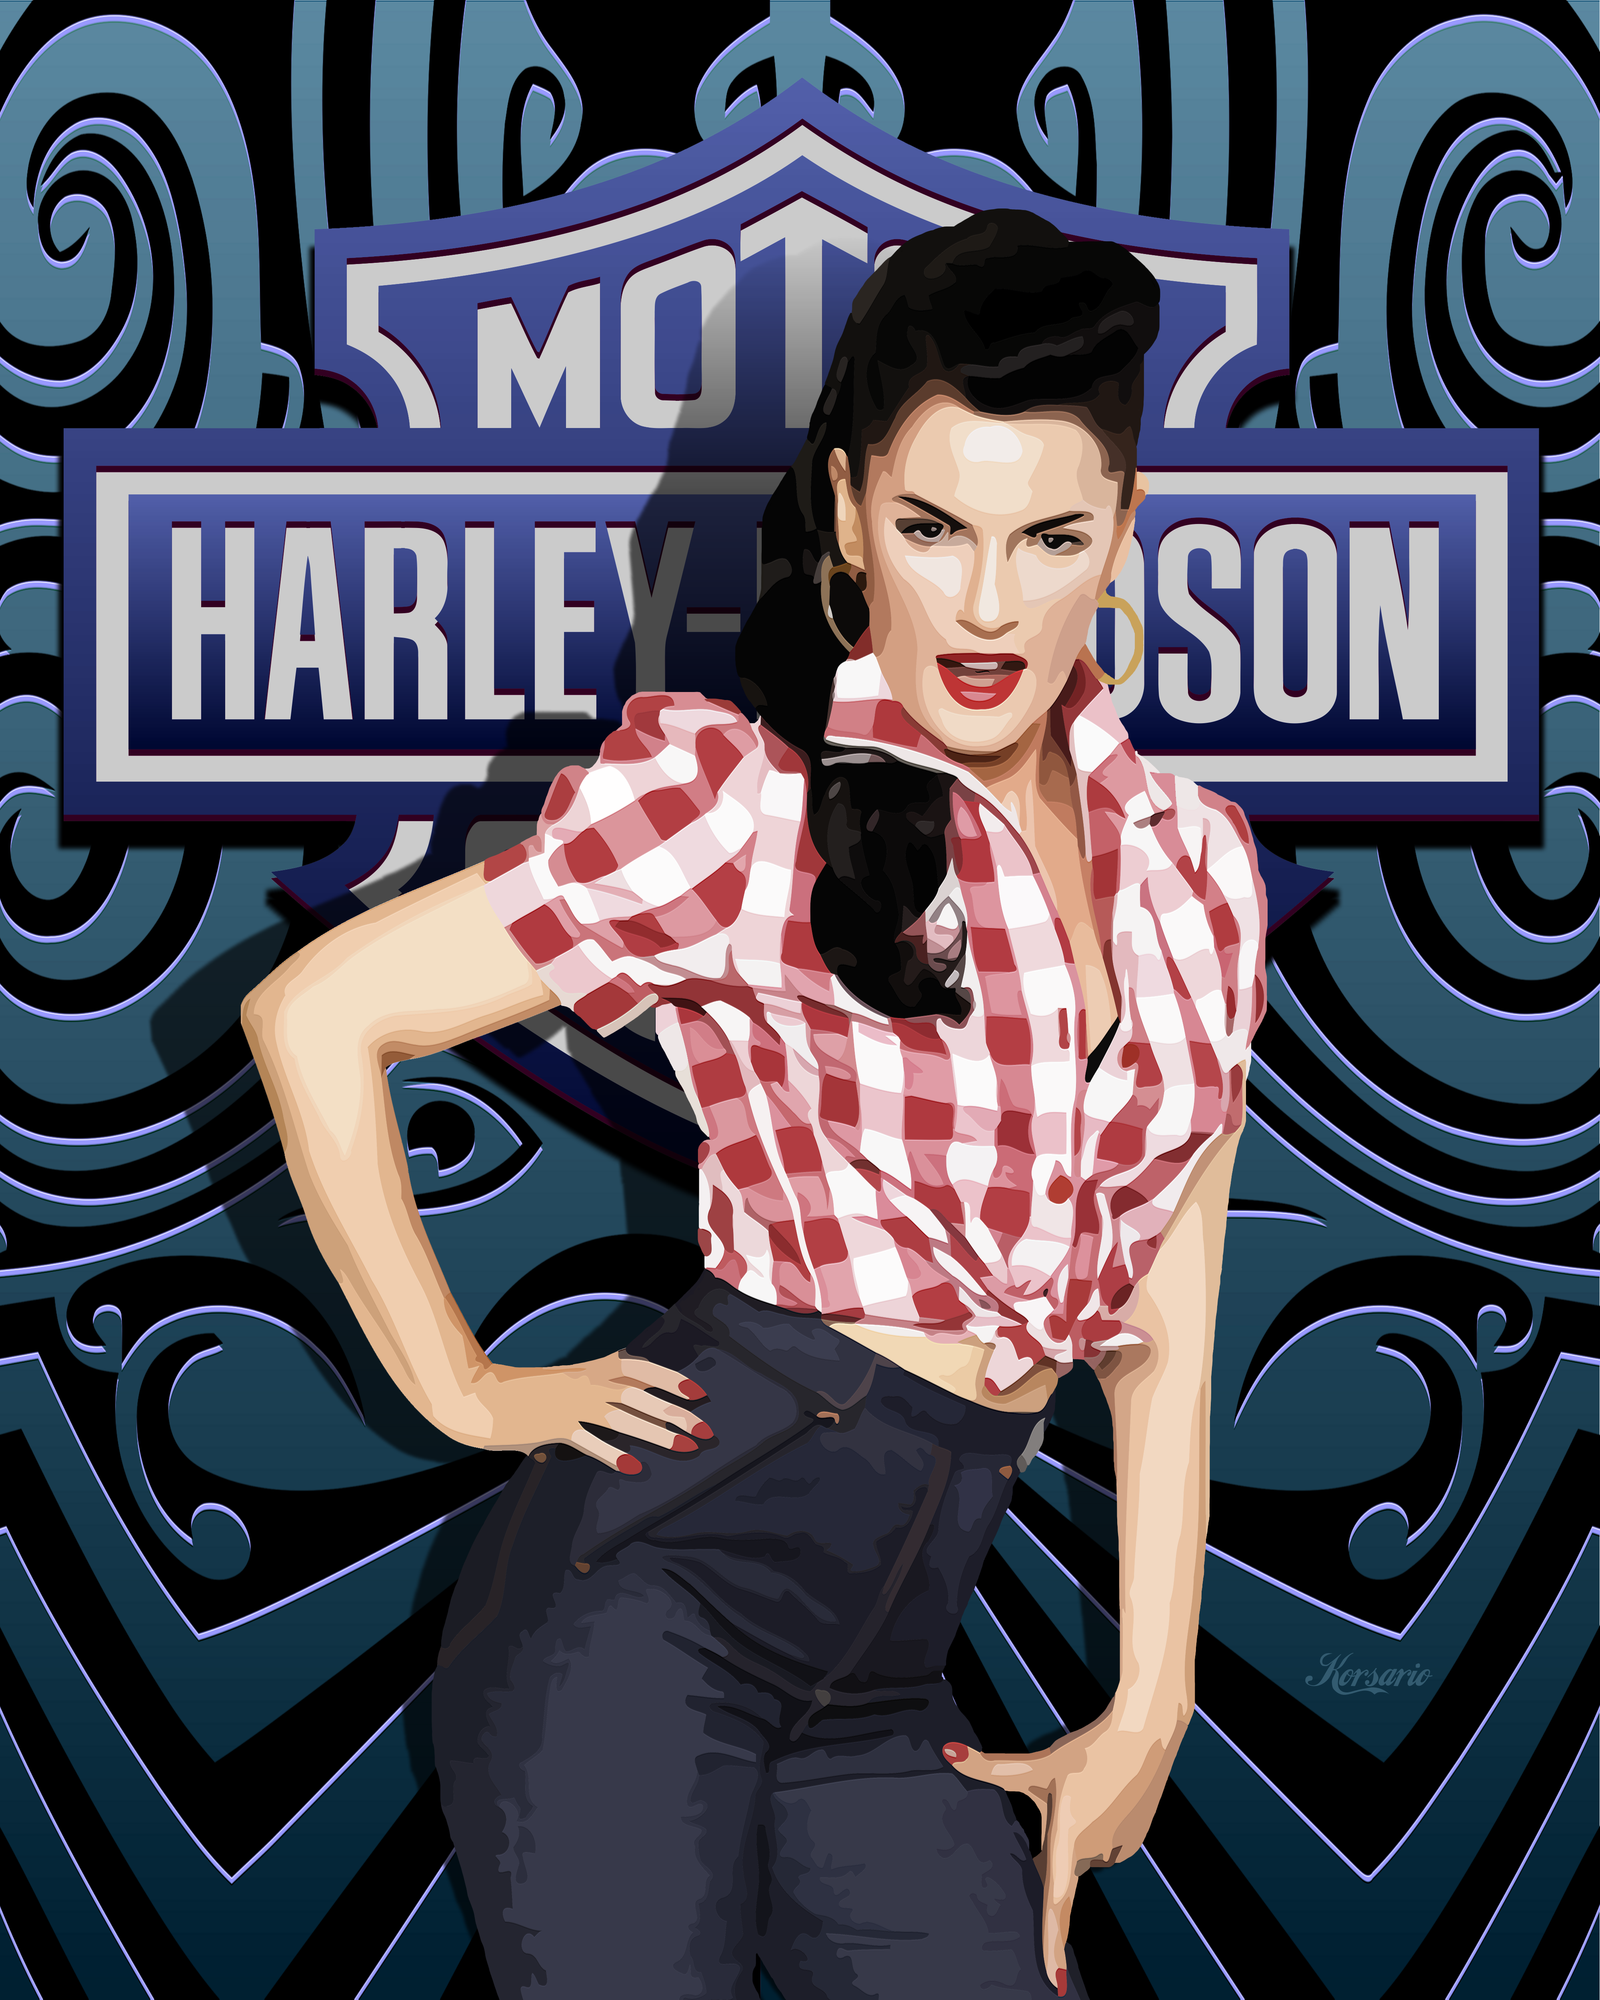 Harley davidson pin up wallpaper wallpapersafari harley davidson pin up by ivankorsario 1600x2000 freerunsca Images